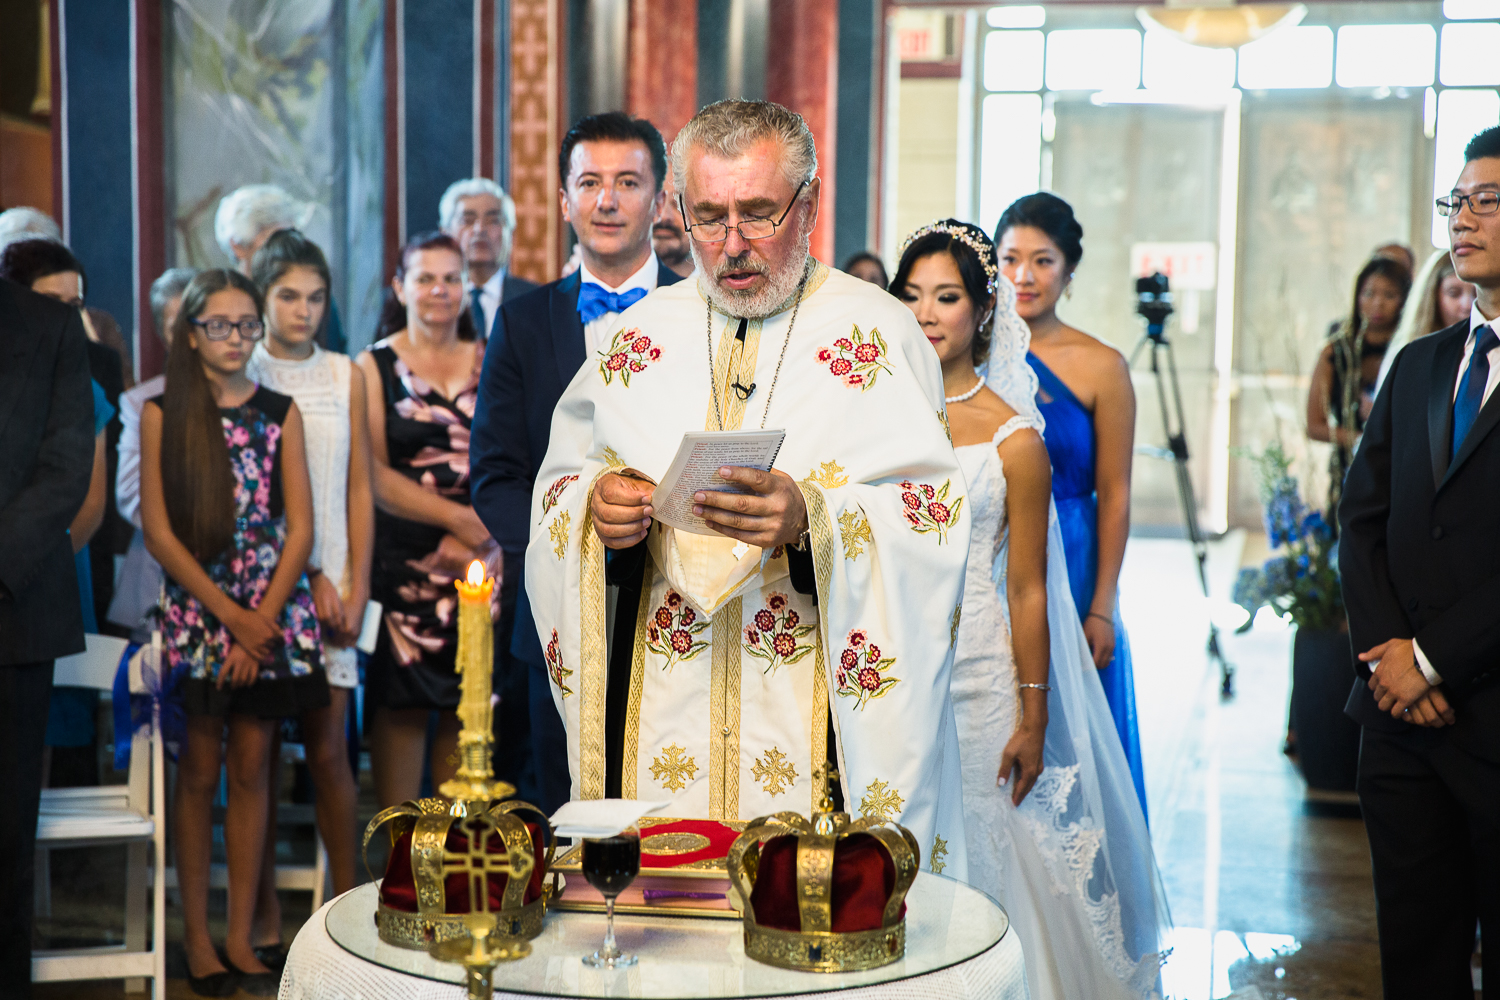 St-Sava-Serbian-Orthodox-Church-Wedding-Mississauga-Ontario-Derrel-Ho-Shing-Photography-0011.jpg